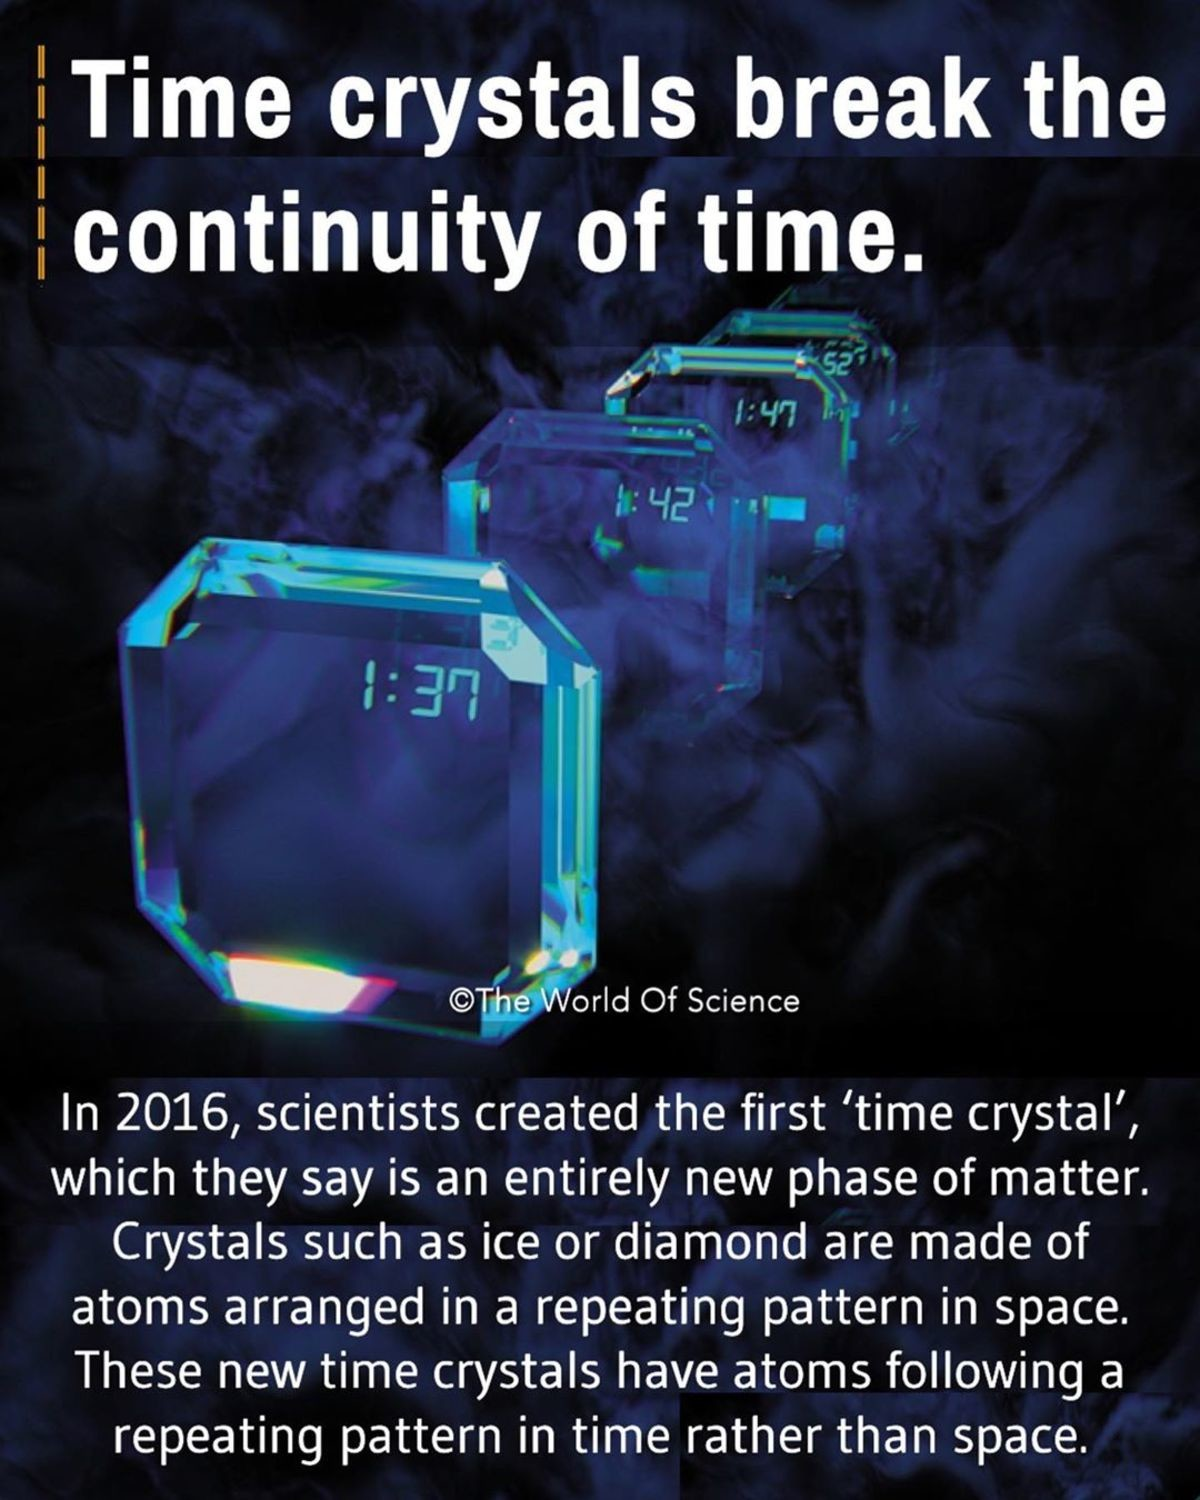 Time Crystals. Time crystals were first theorized in 2012 by Nobel laureate Frank Wilczek. After enough discussion and fleshing out by other theorists, the expe